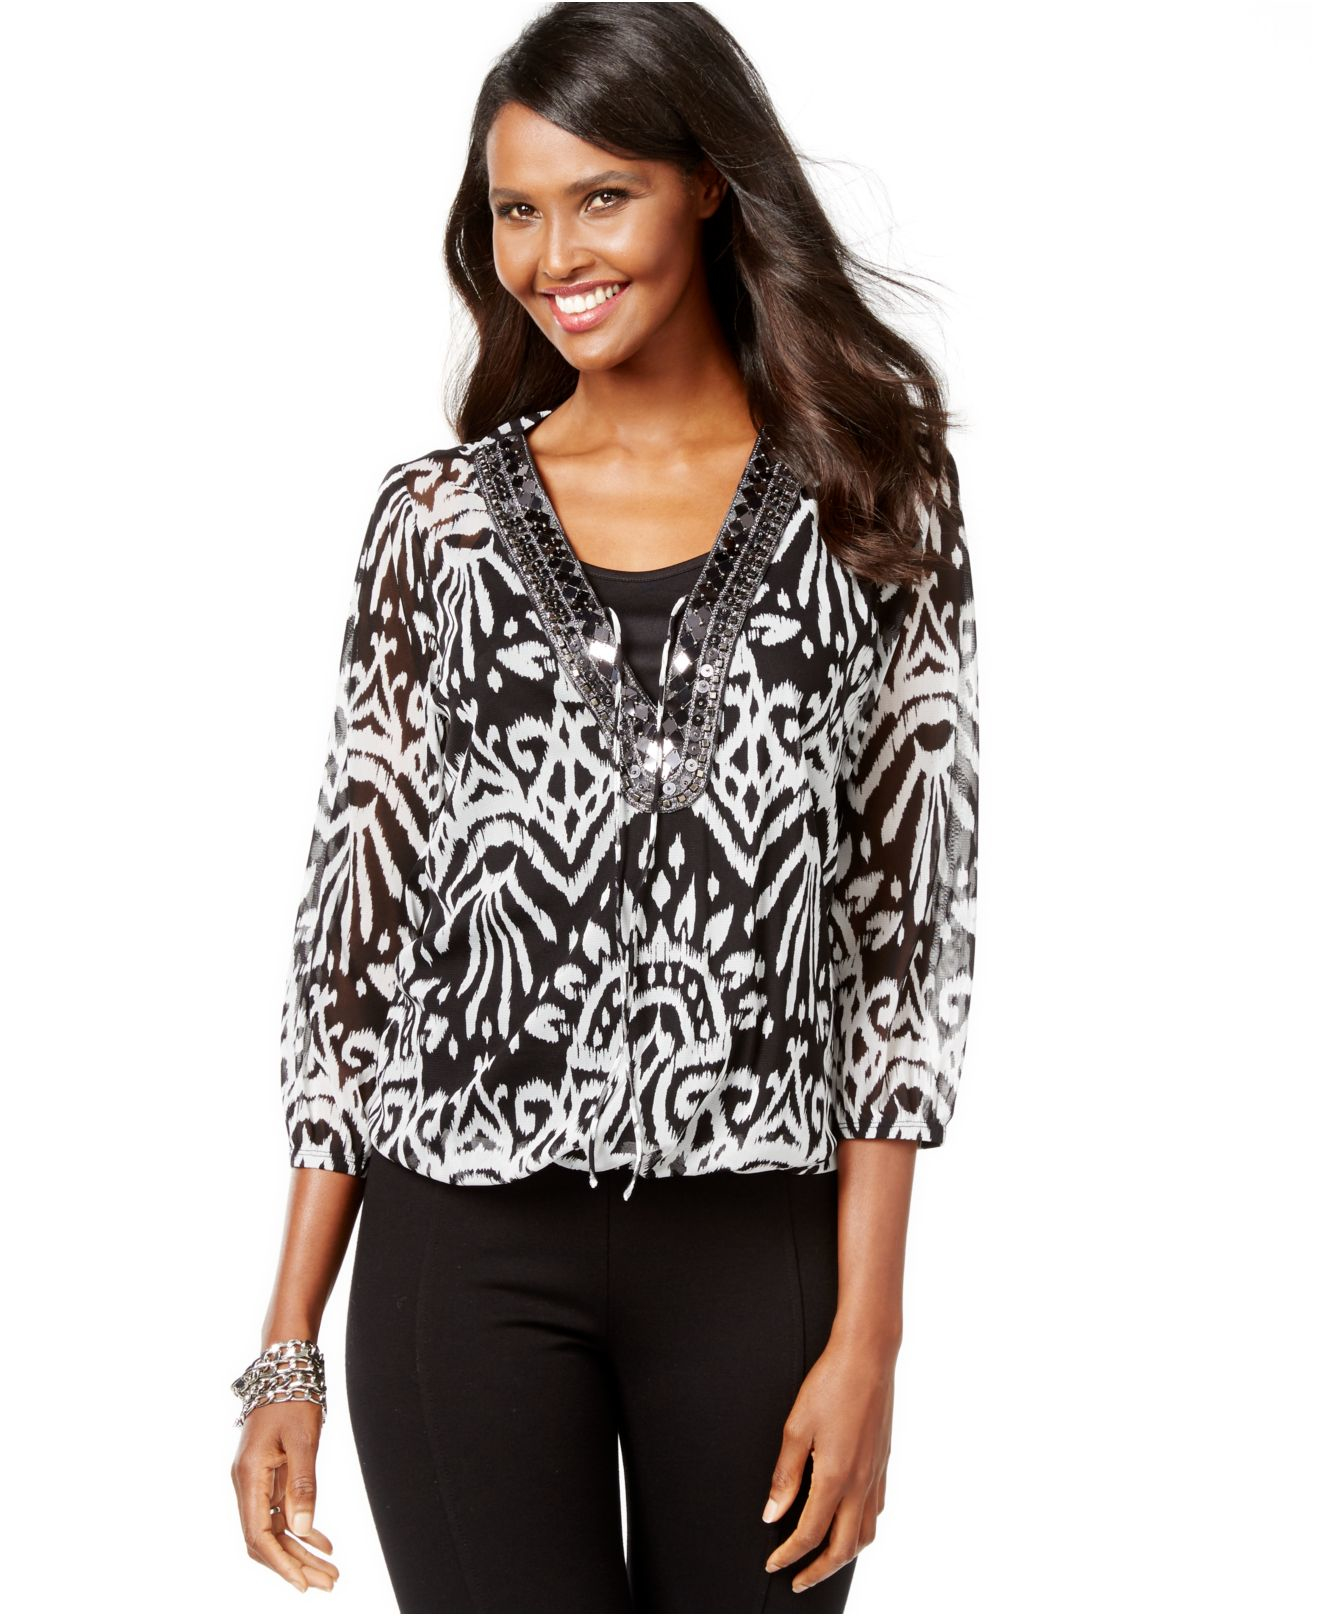 Macy's – Shop Fashion Clothing & Accessories – Official. Macy's – FREE Shipping at depotting.ml Macy's has the latest fashion brands on Women's and Men's Clothing, Accessories, Jewelry, Beauty, Shoes and Home Products.